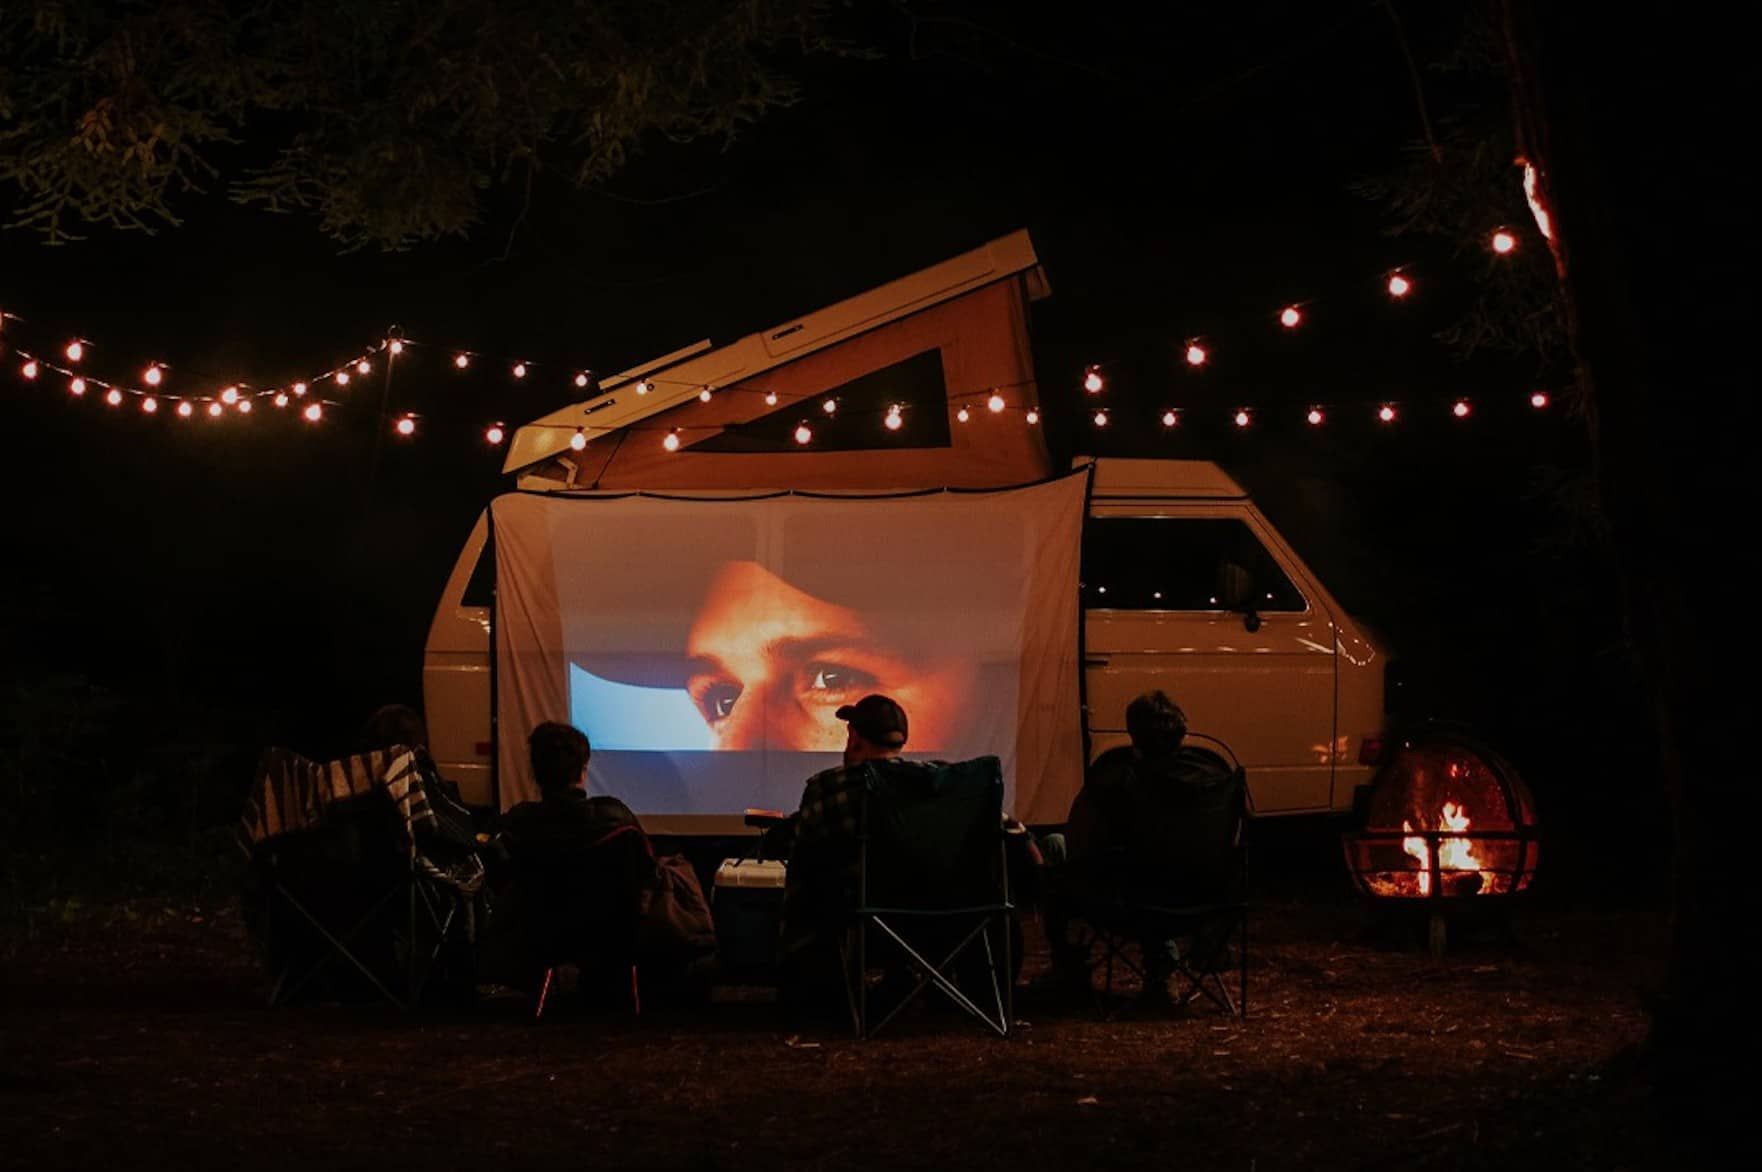 people sat watching a movie projected onto a campervan